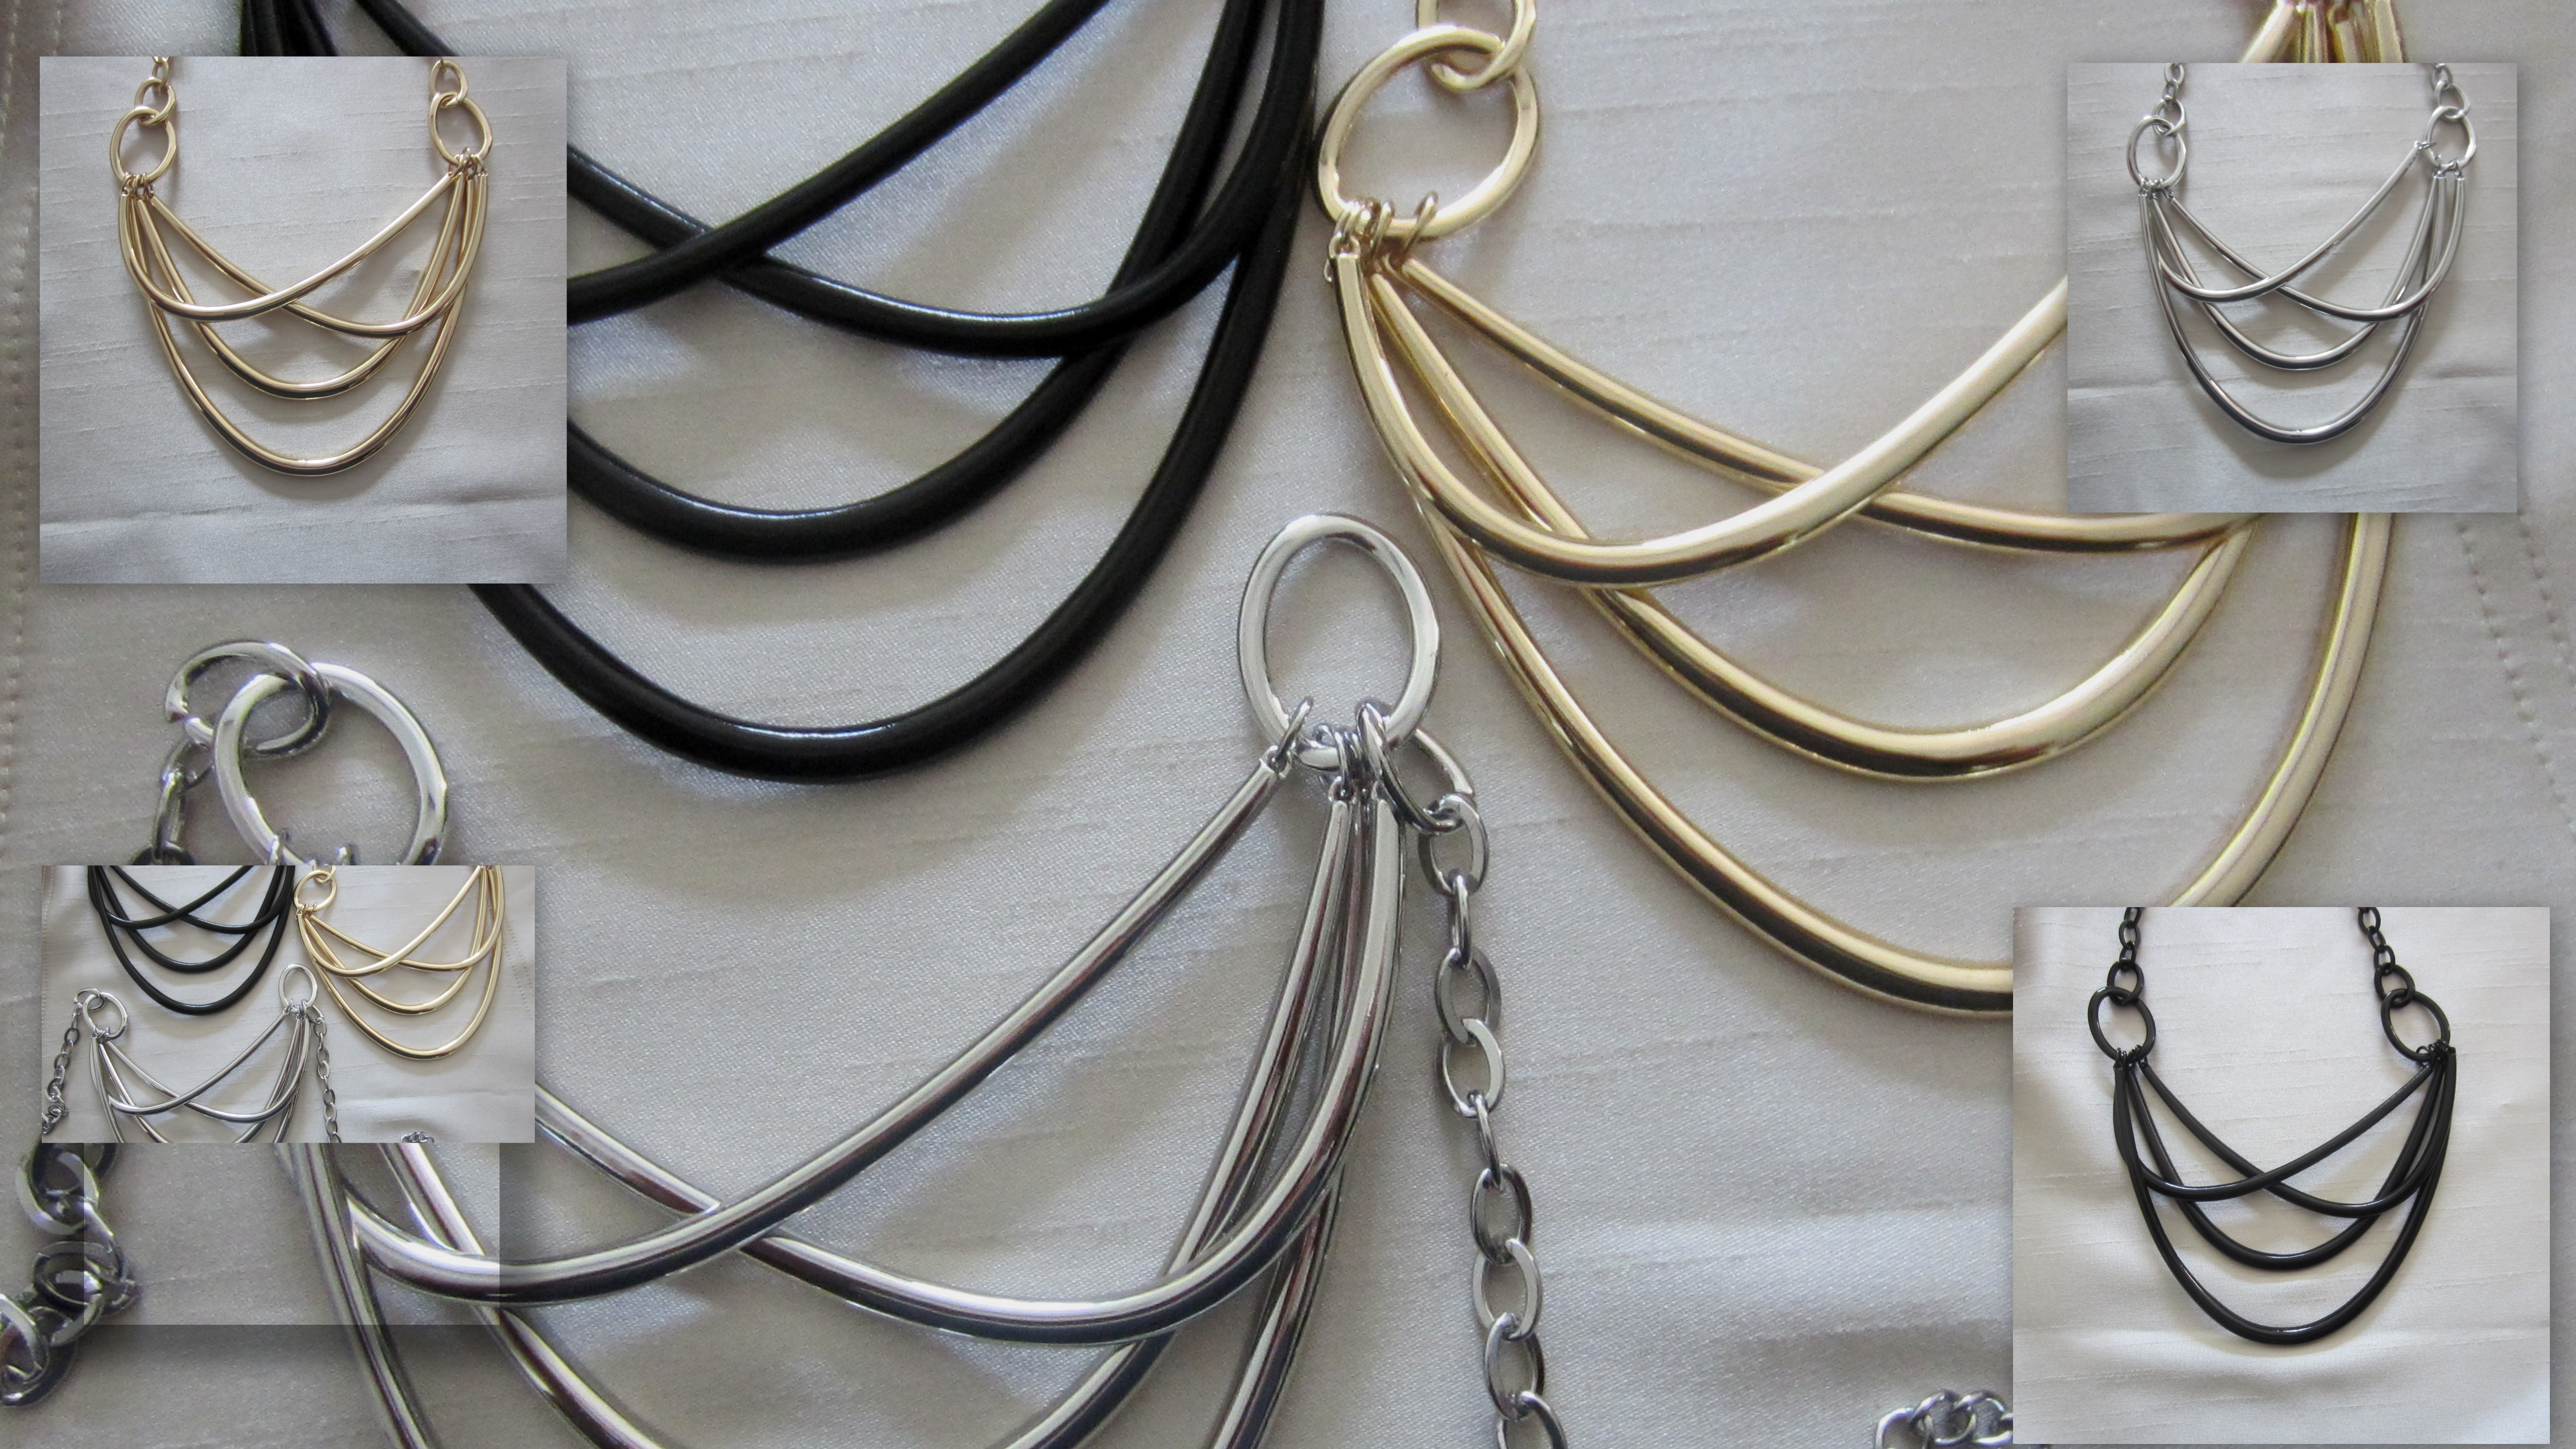 Wire Cuff & Trapeze Necklace! Beautiful! - Blogs & Forums